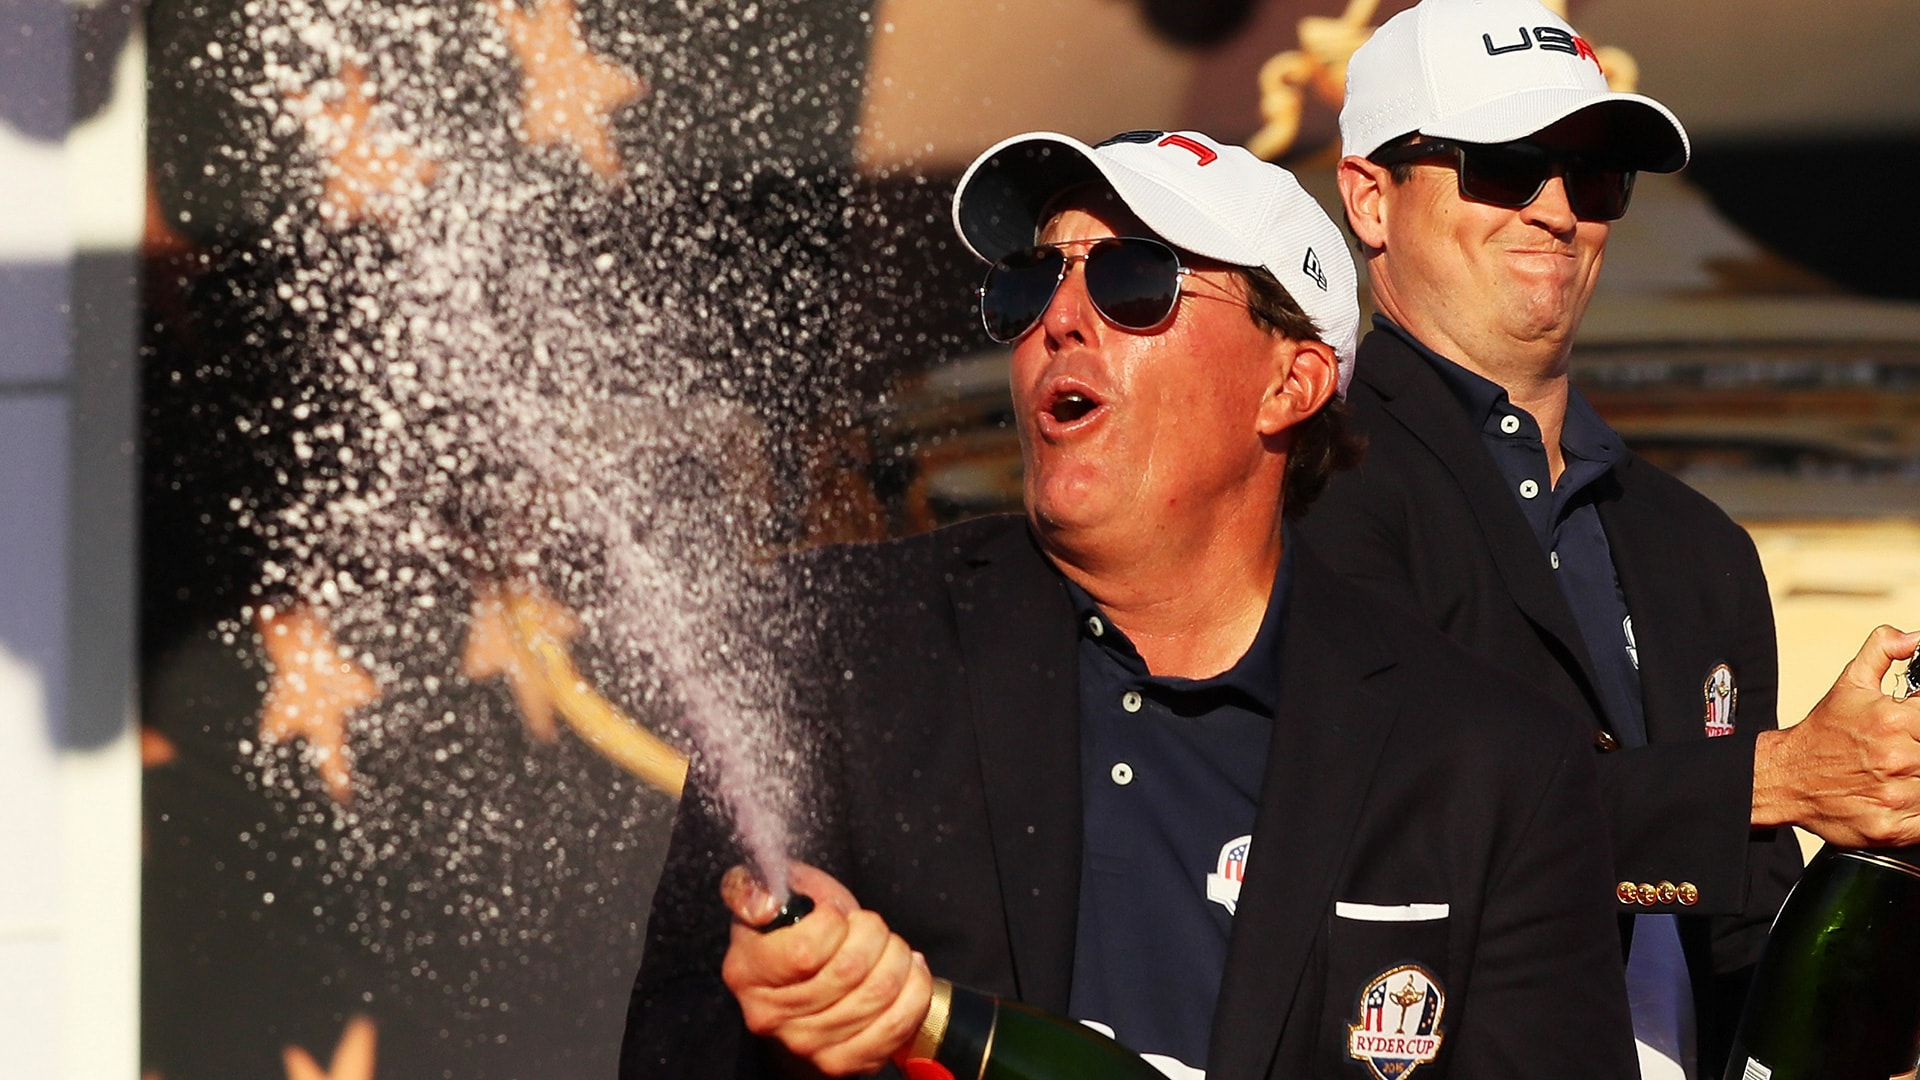 Mickelson at 2016 Ryder Cup